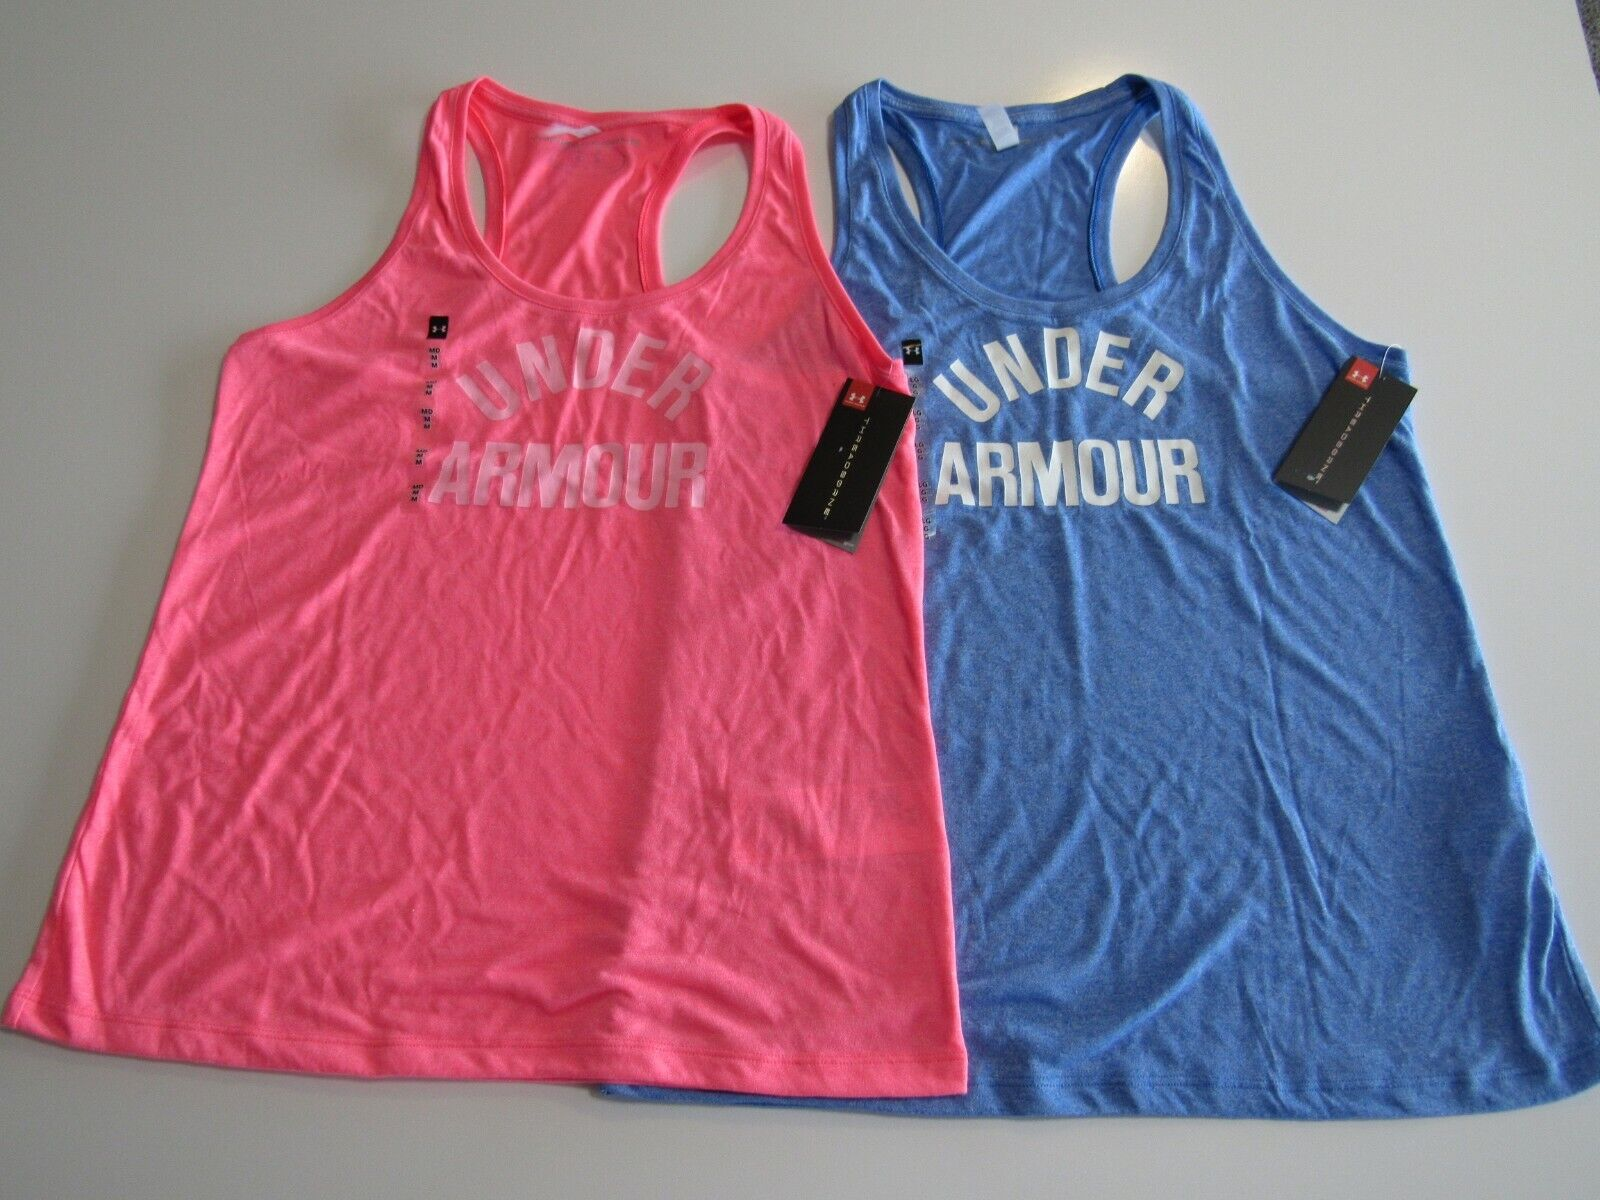 Under Armour Womens Treadborne Tank Tops 1290612 Nwt